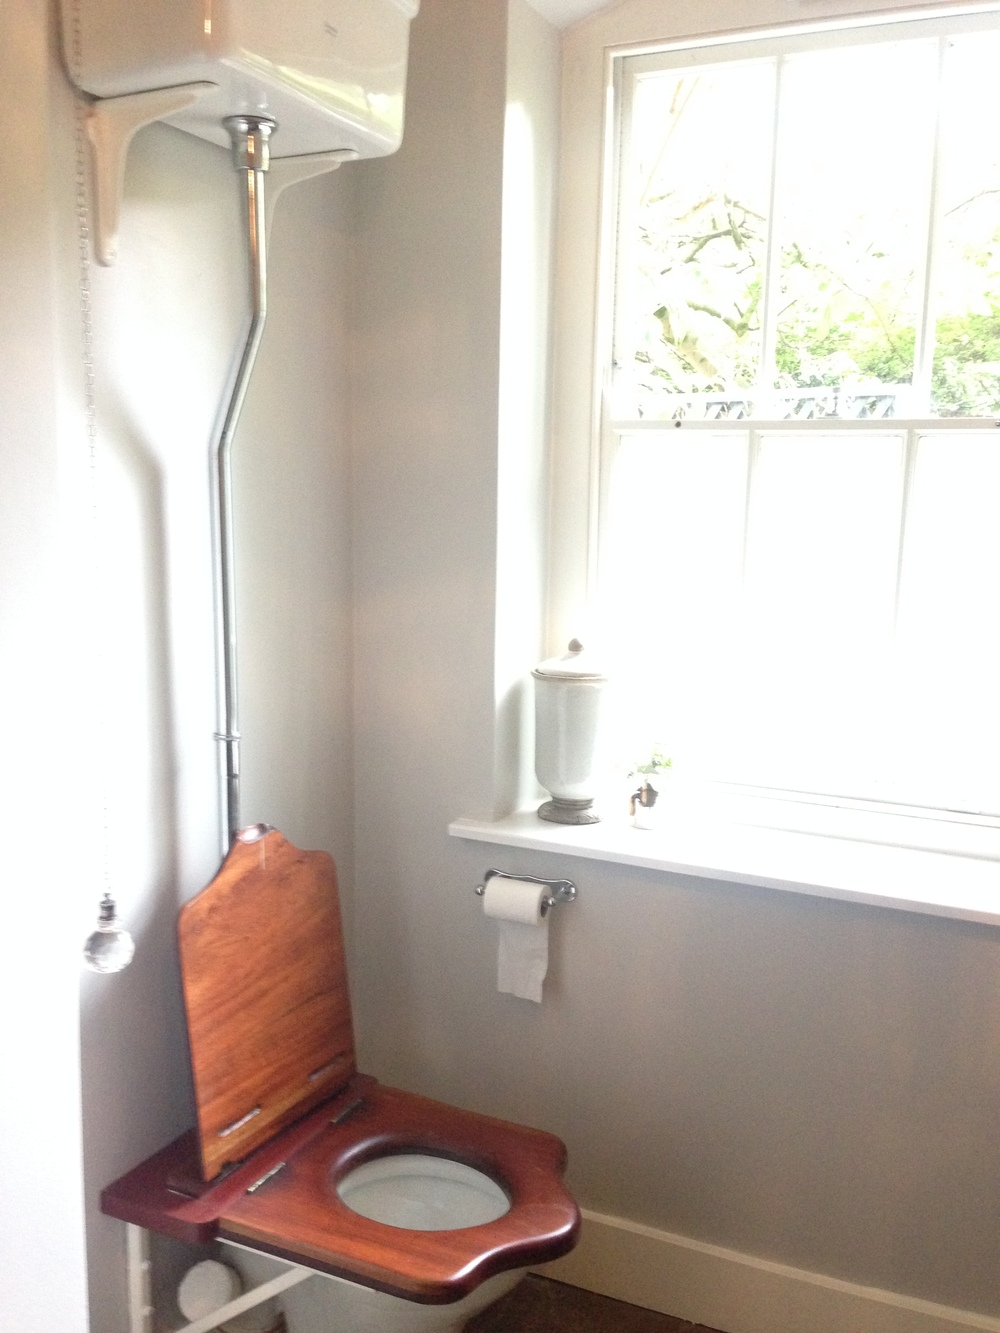 House 4 (Hampstead) - Bathroom